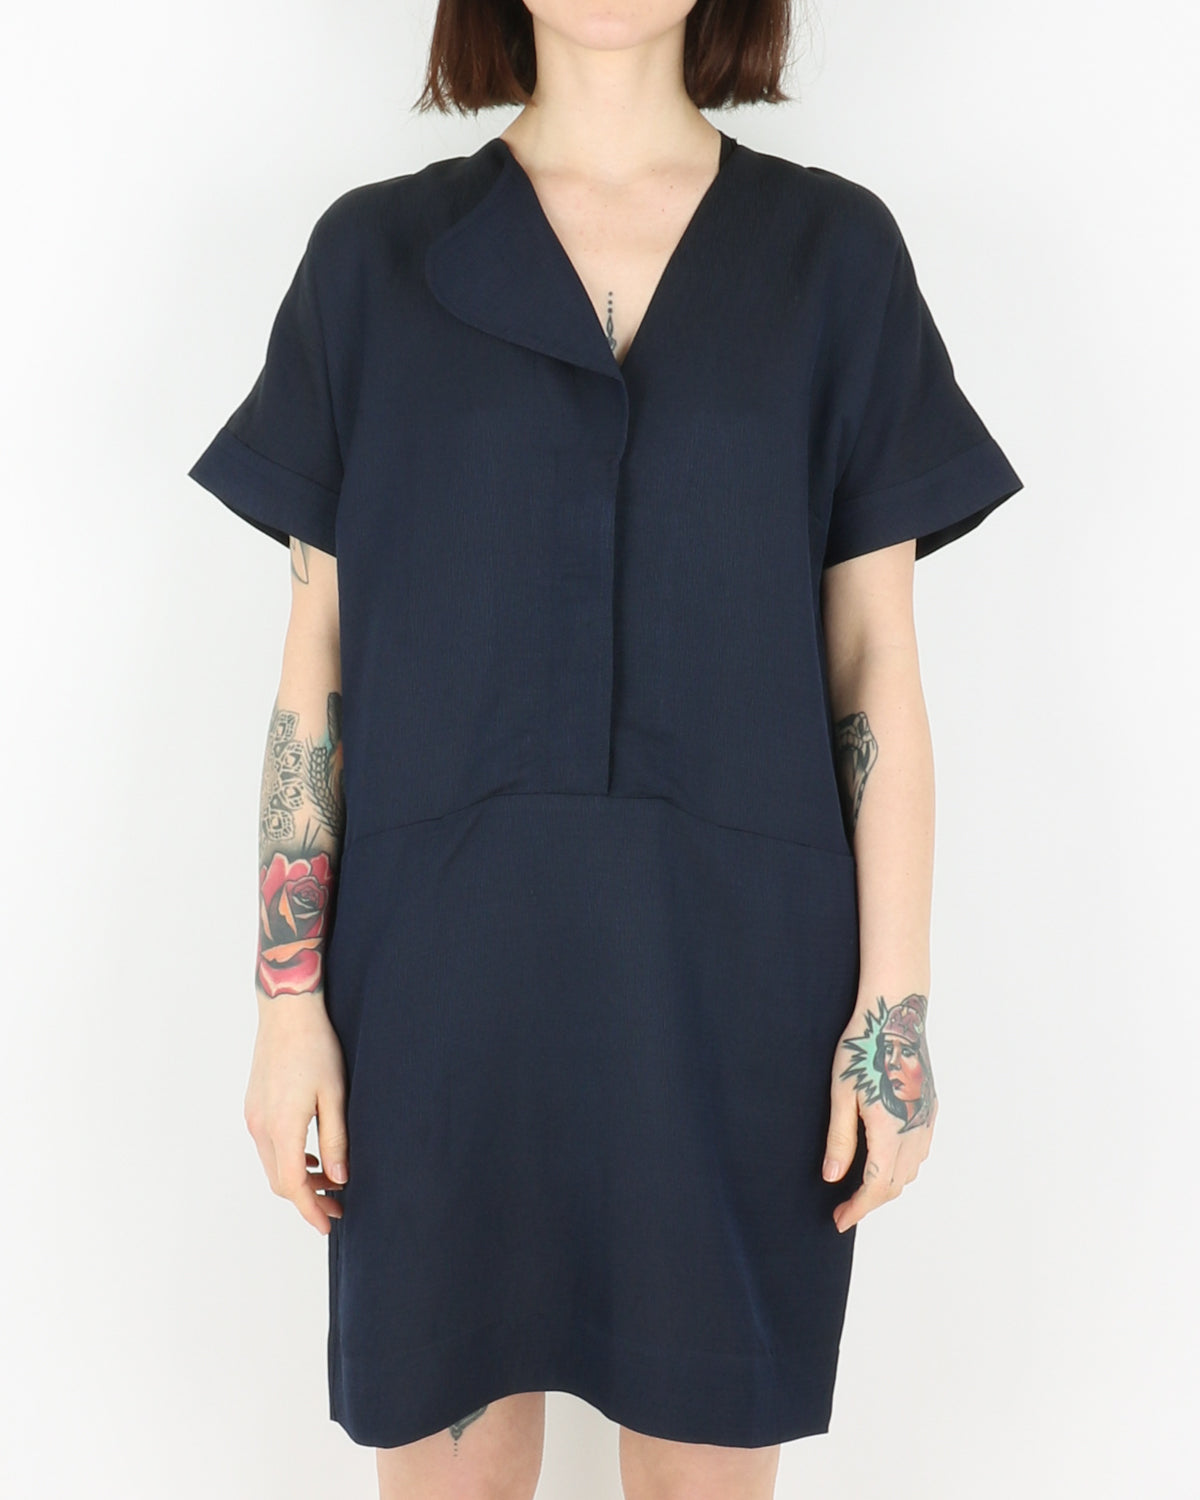 libertine libertine_deal dress_dark navy_view_1_3